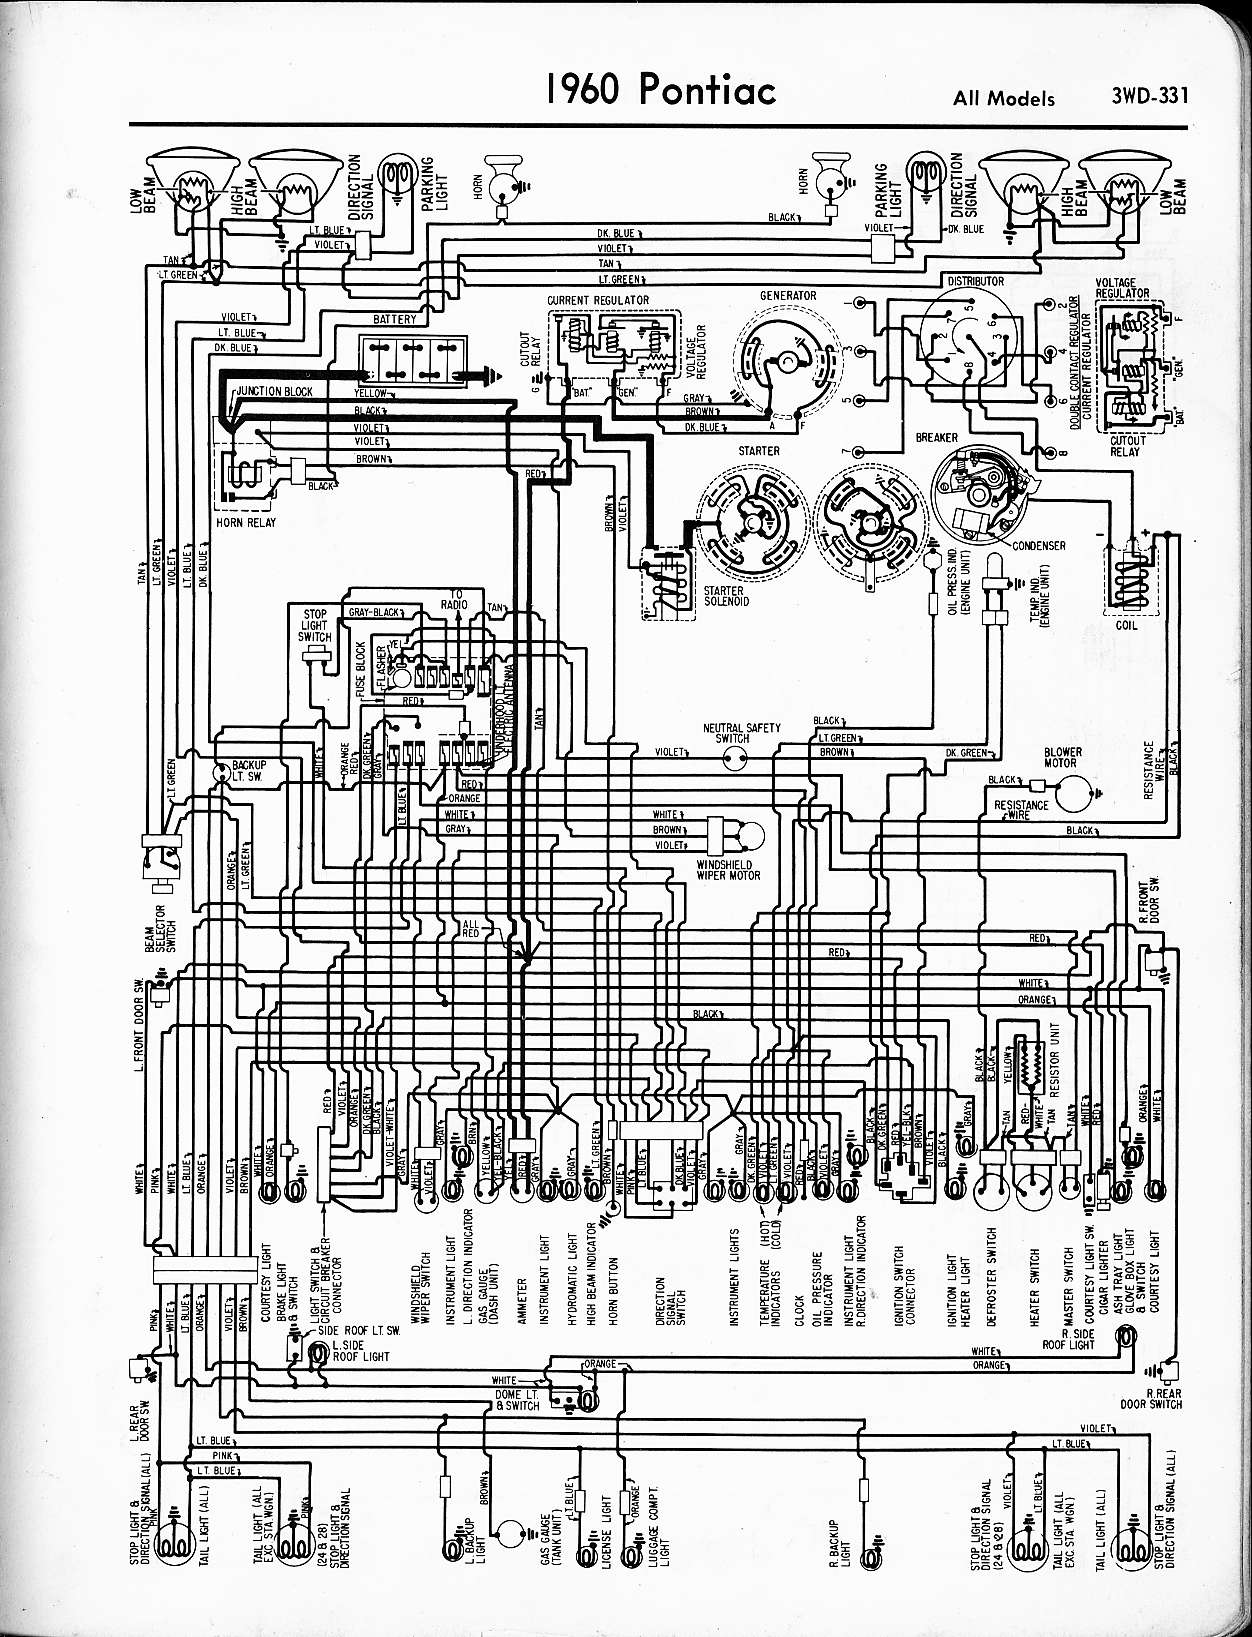 wallace racing wiring diagrams rh wallaceracing com 1967 Pontiac GTO Wiring-Diagram 1999 Pontiac Bonneville Wiring-Diagram